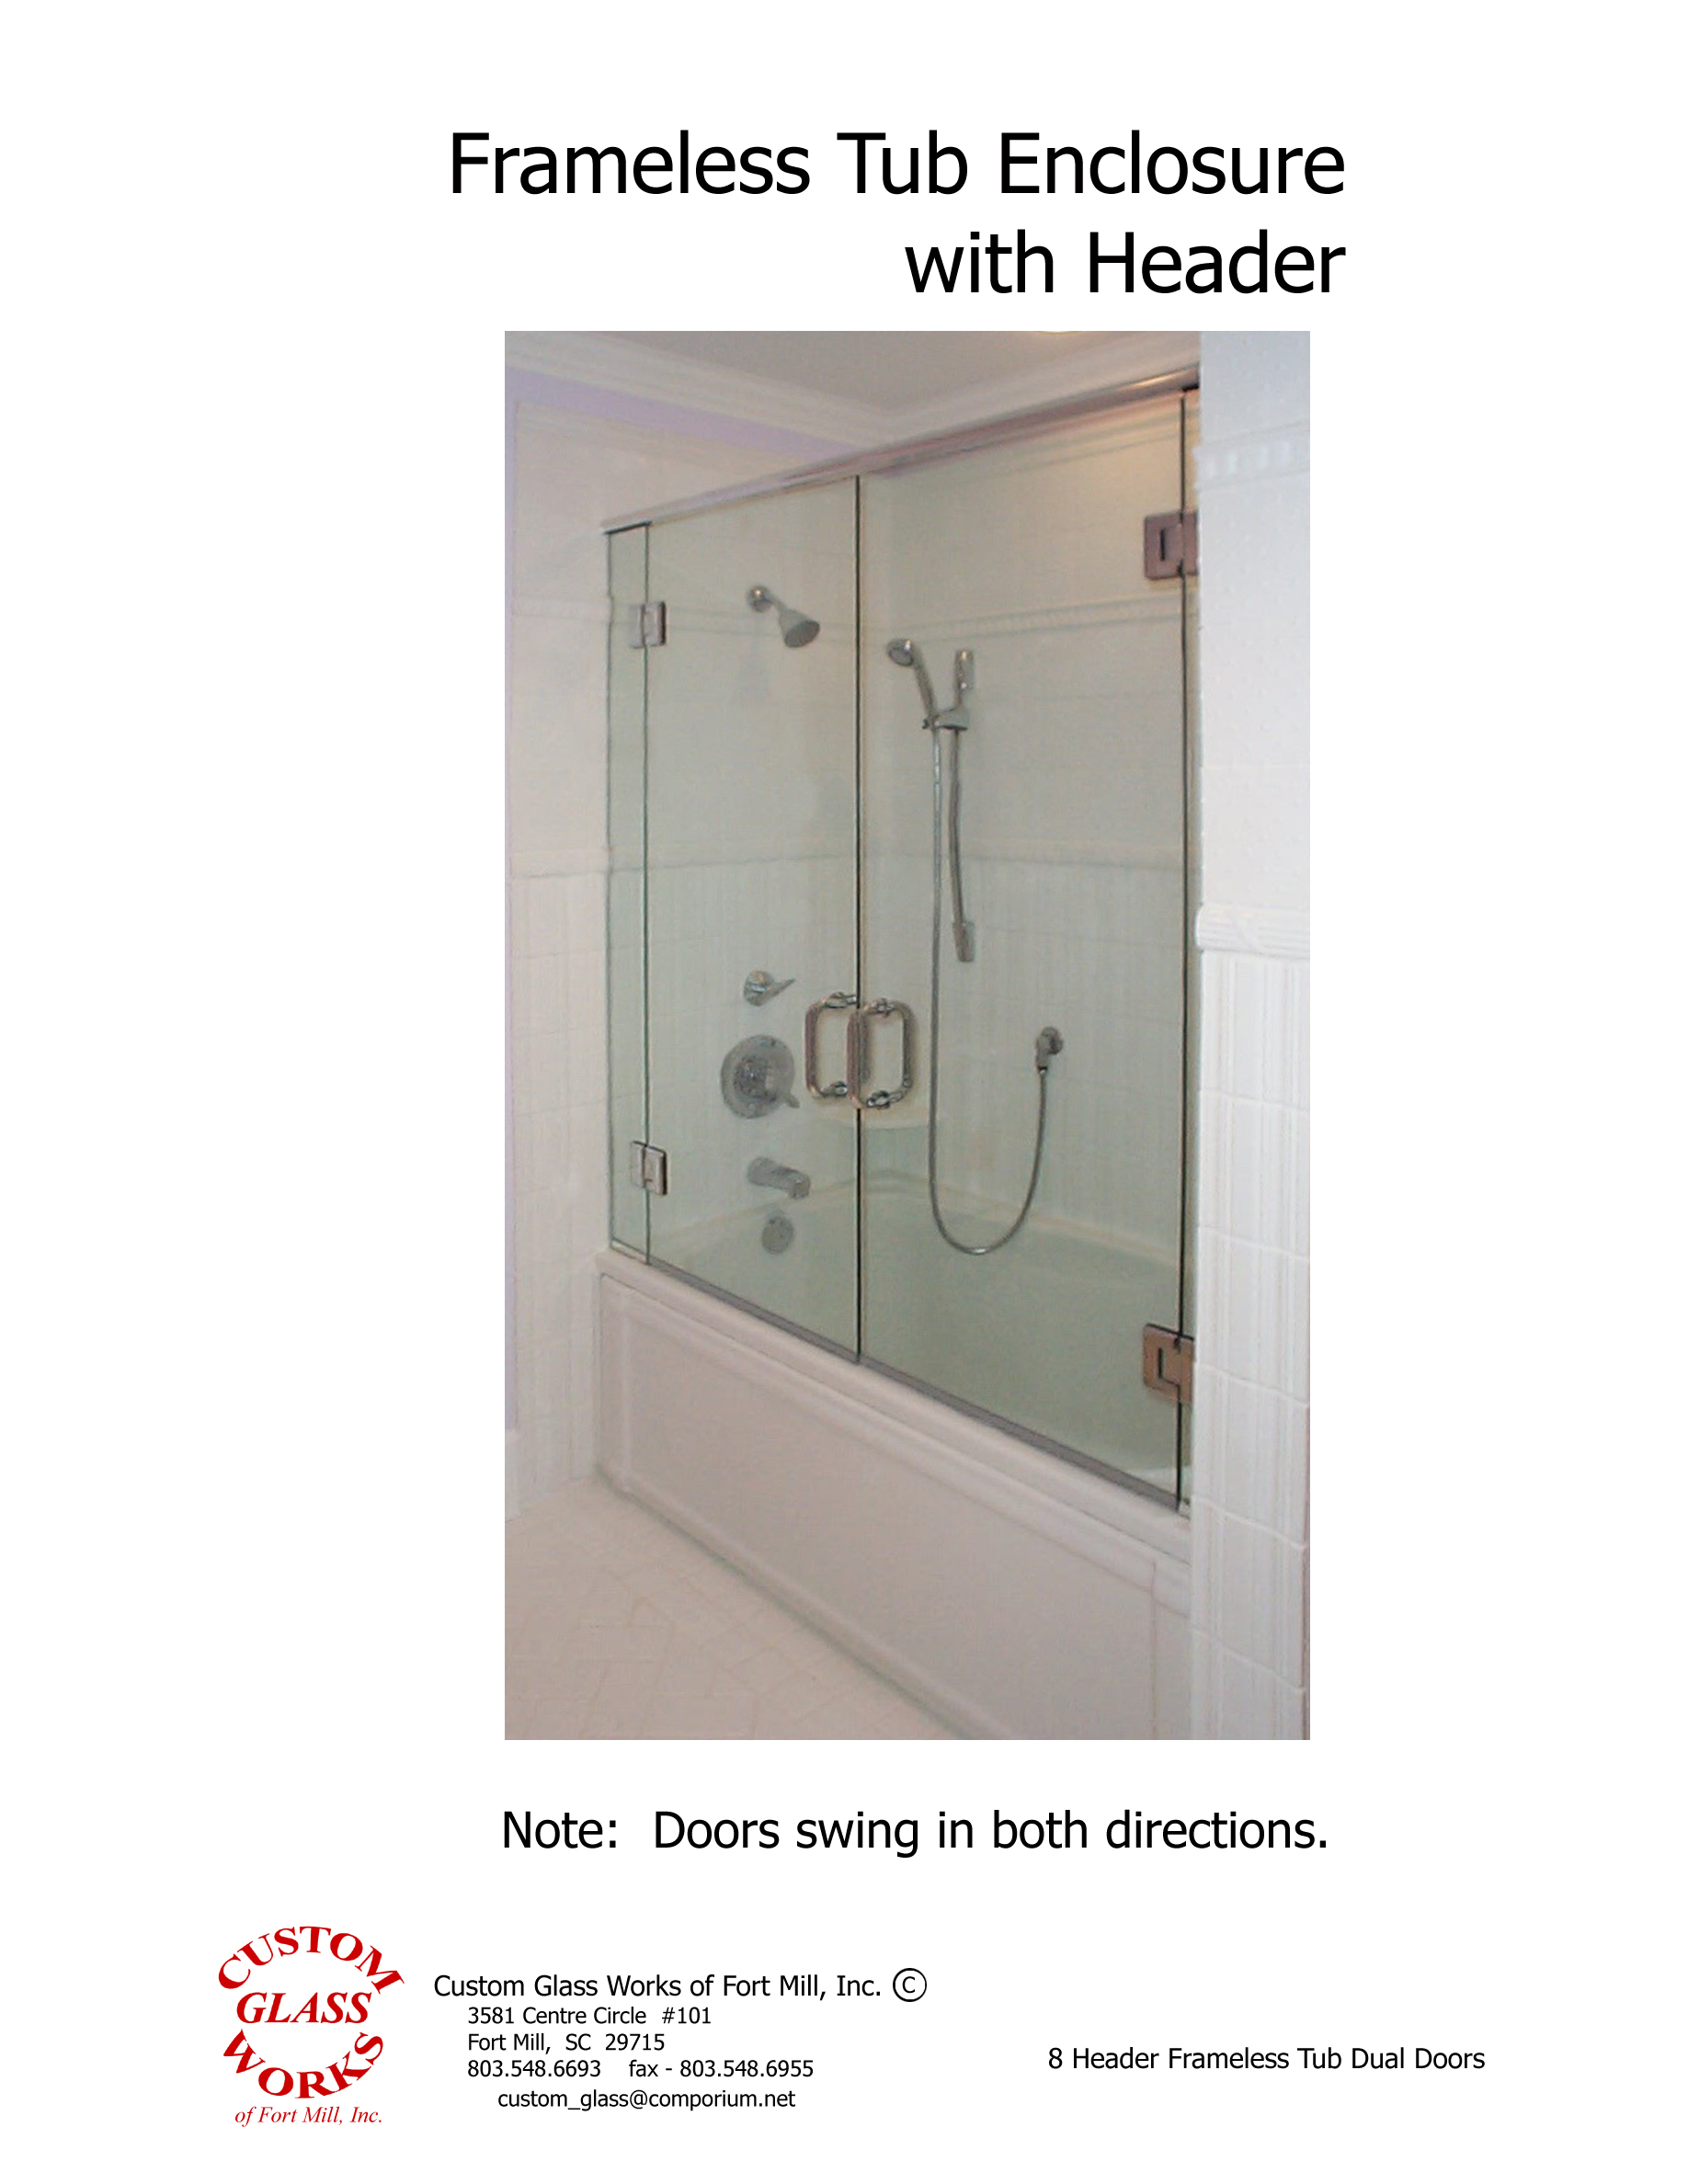 Header Frameless Tub Dual Doors